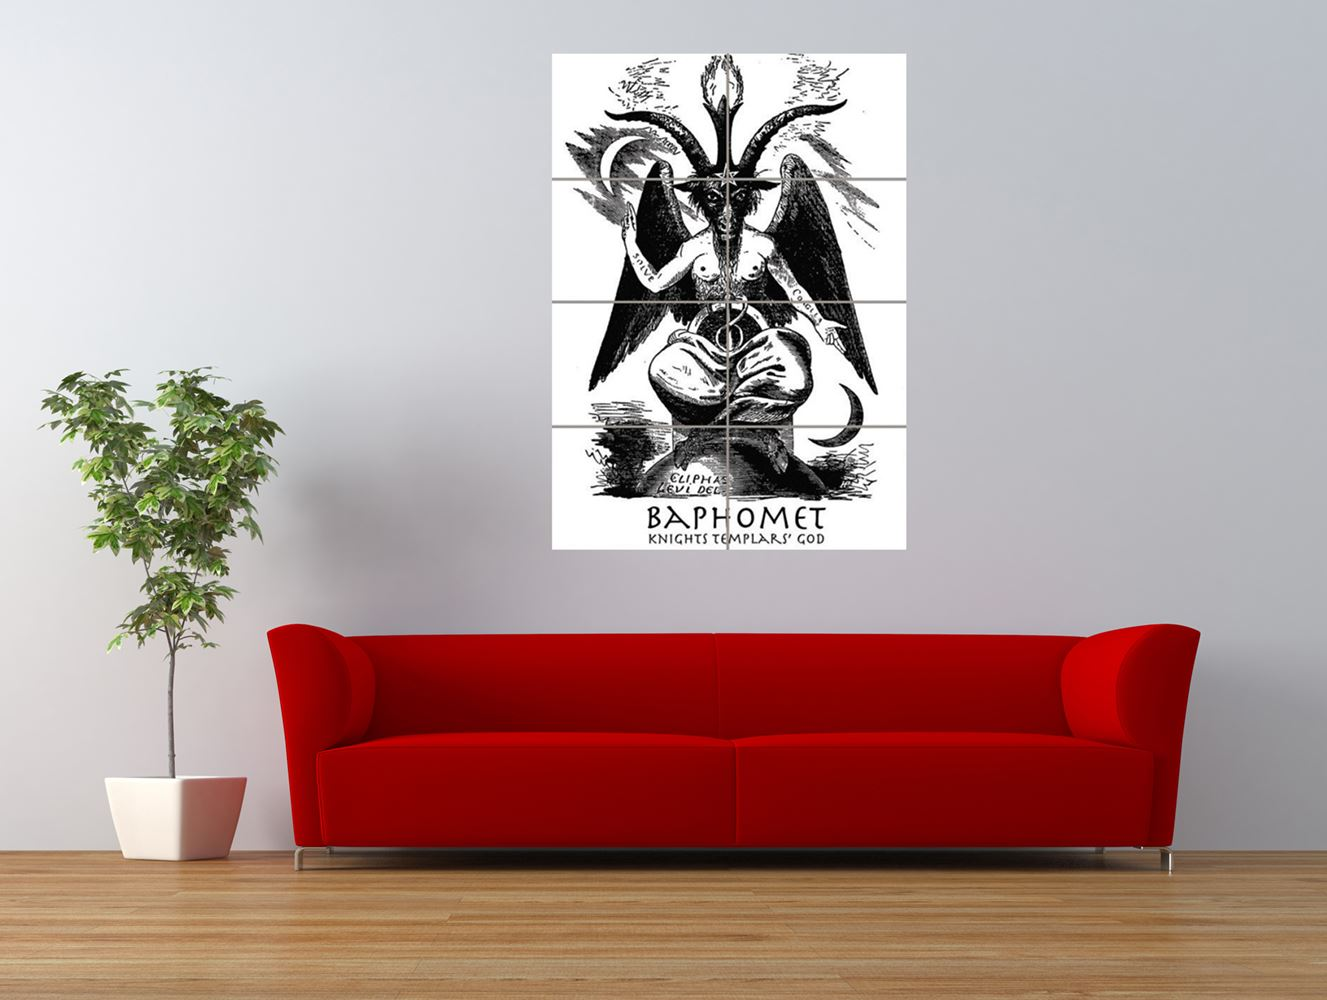 baphomet knights templar icon angel giant art print panel poster nor0601 ebay. Black Bedroom Furniture Sets. Home Design Ideas